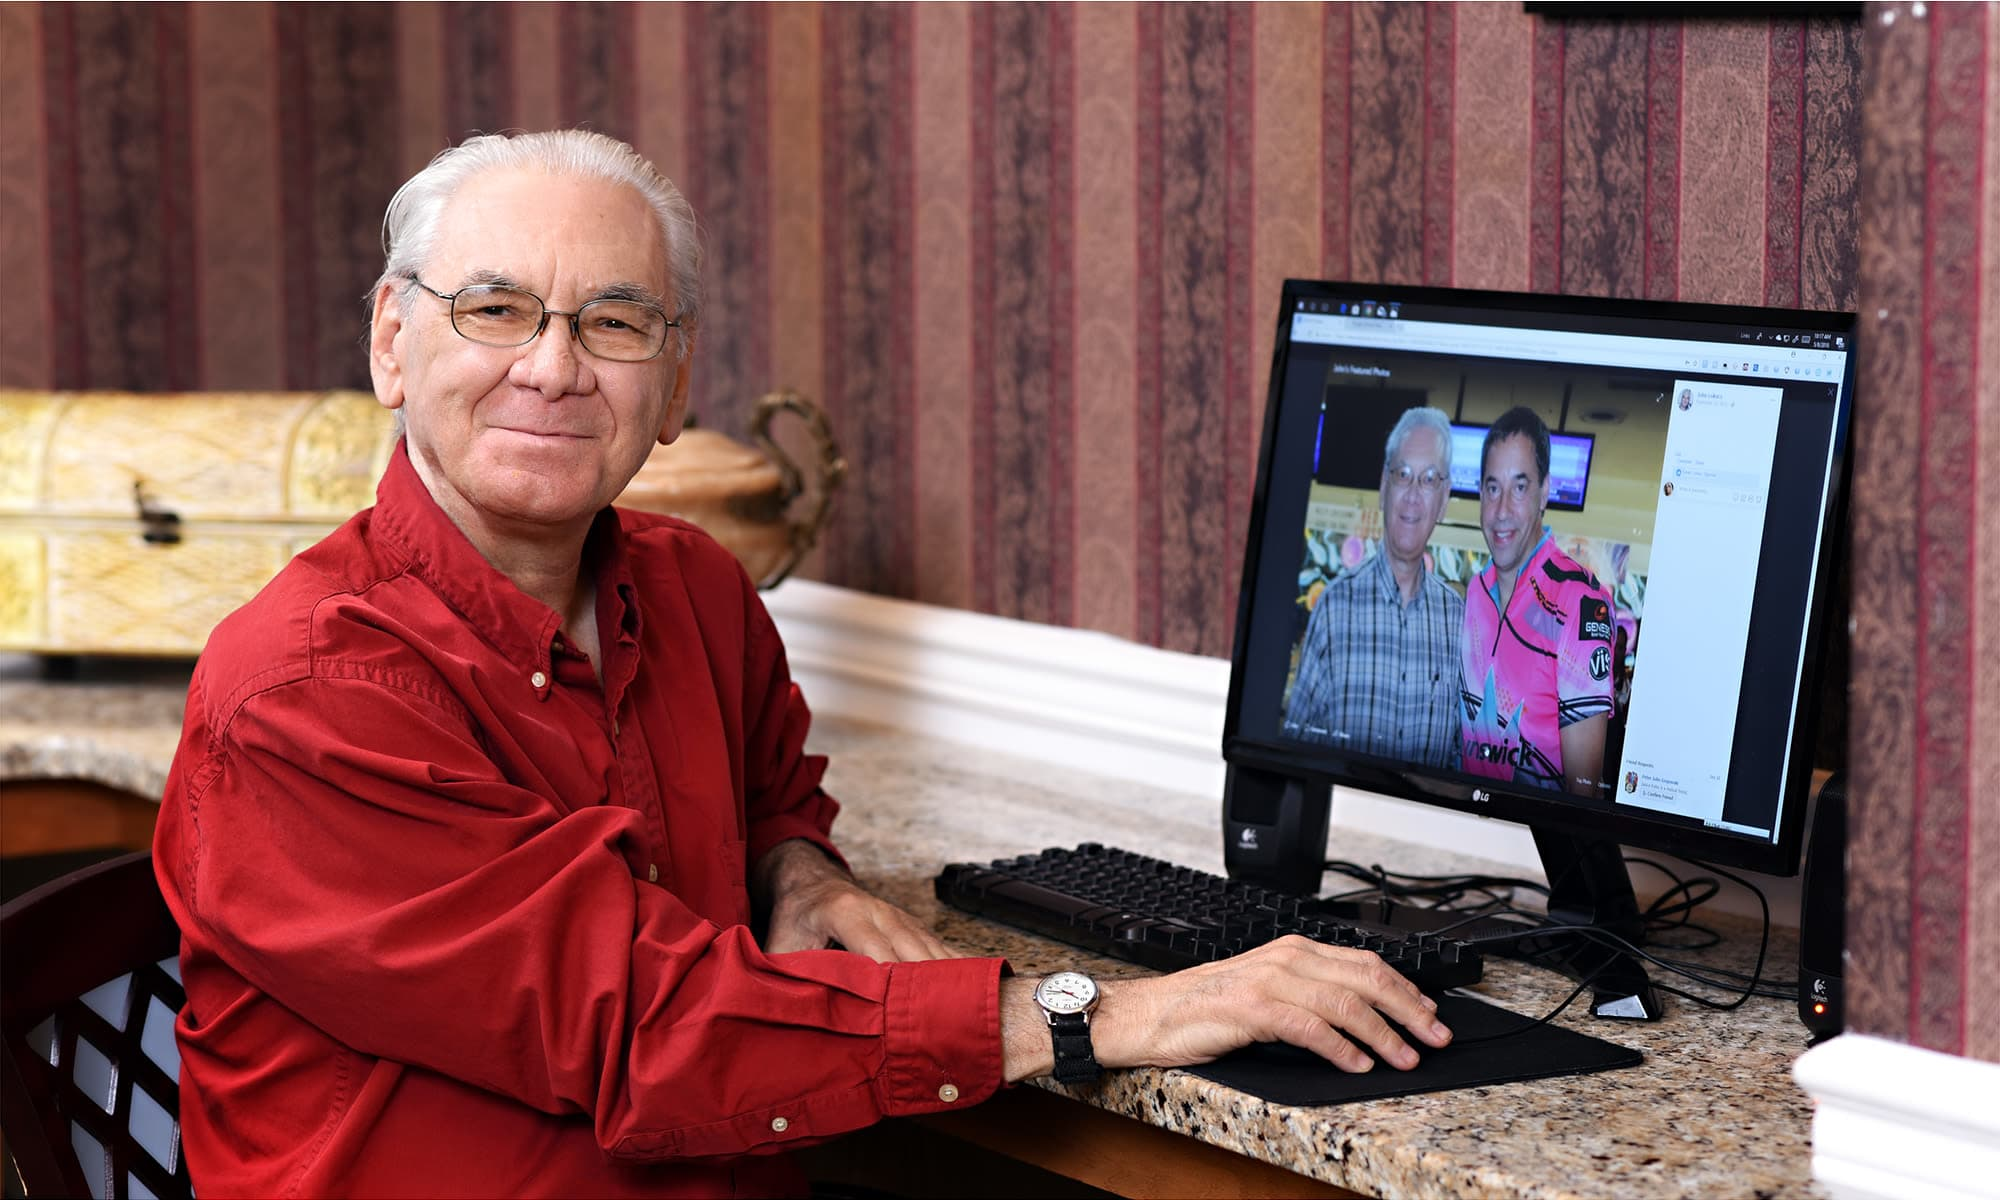 Senior living resident using the computer at Mattison Crossing at Manalapan Avenue in Freehold, New Jersey.